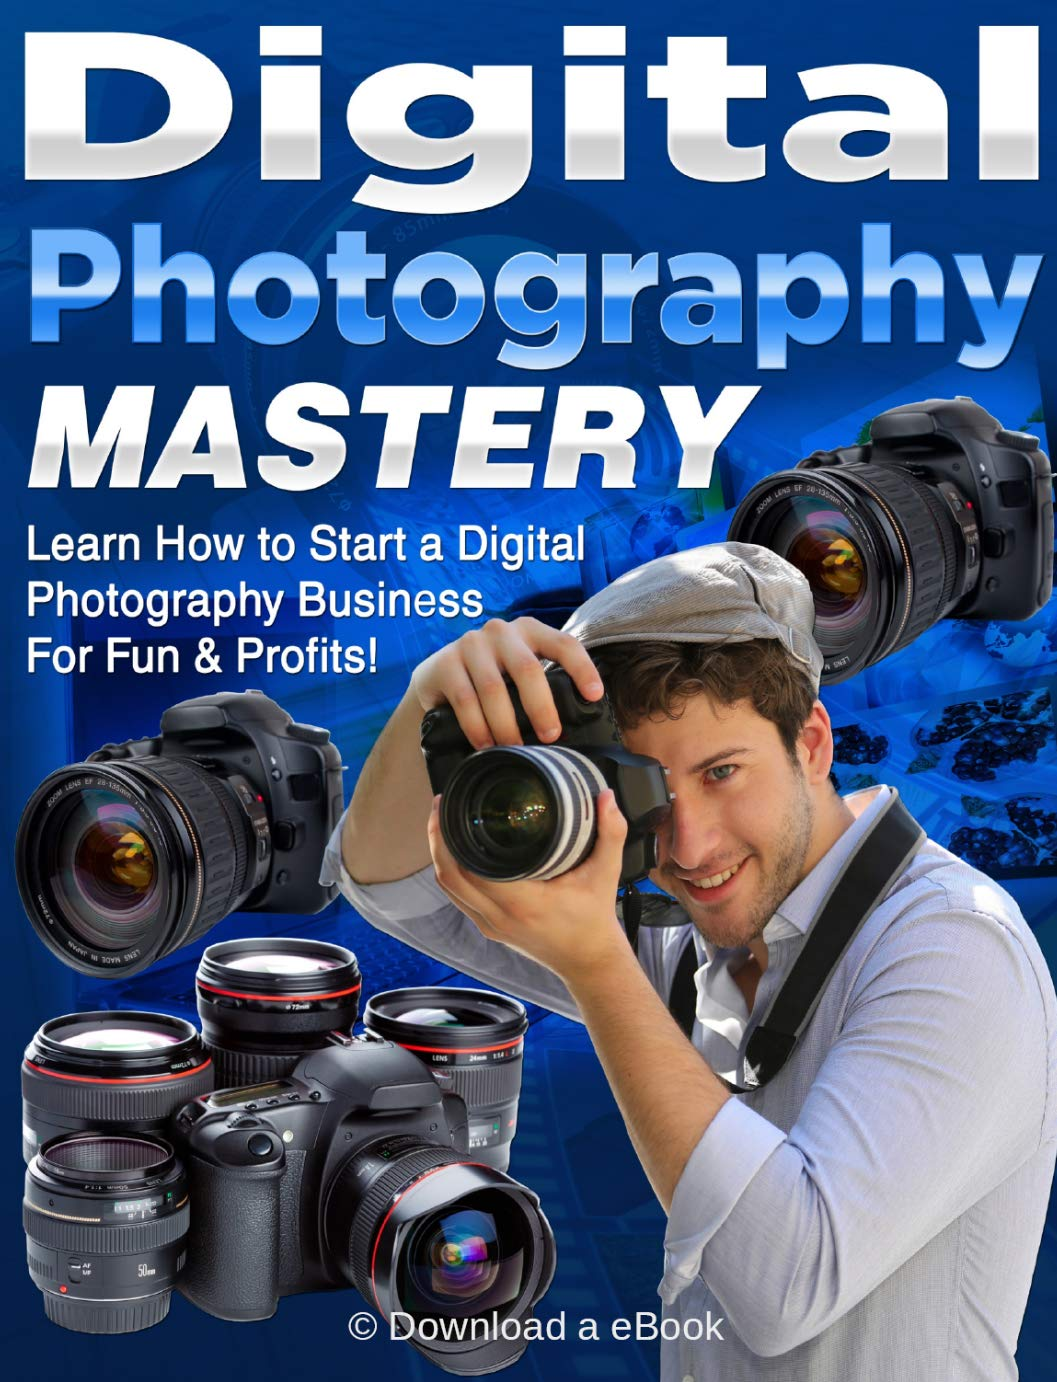 Digital Photography Guide: Digital Photography Complete Course For Beginners Kindle Book